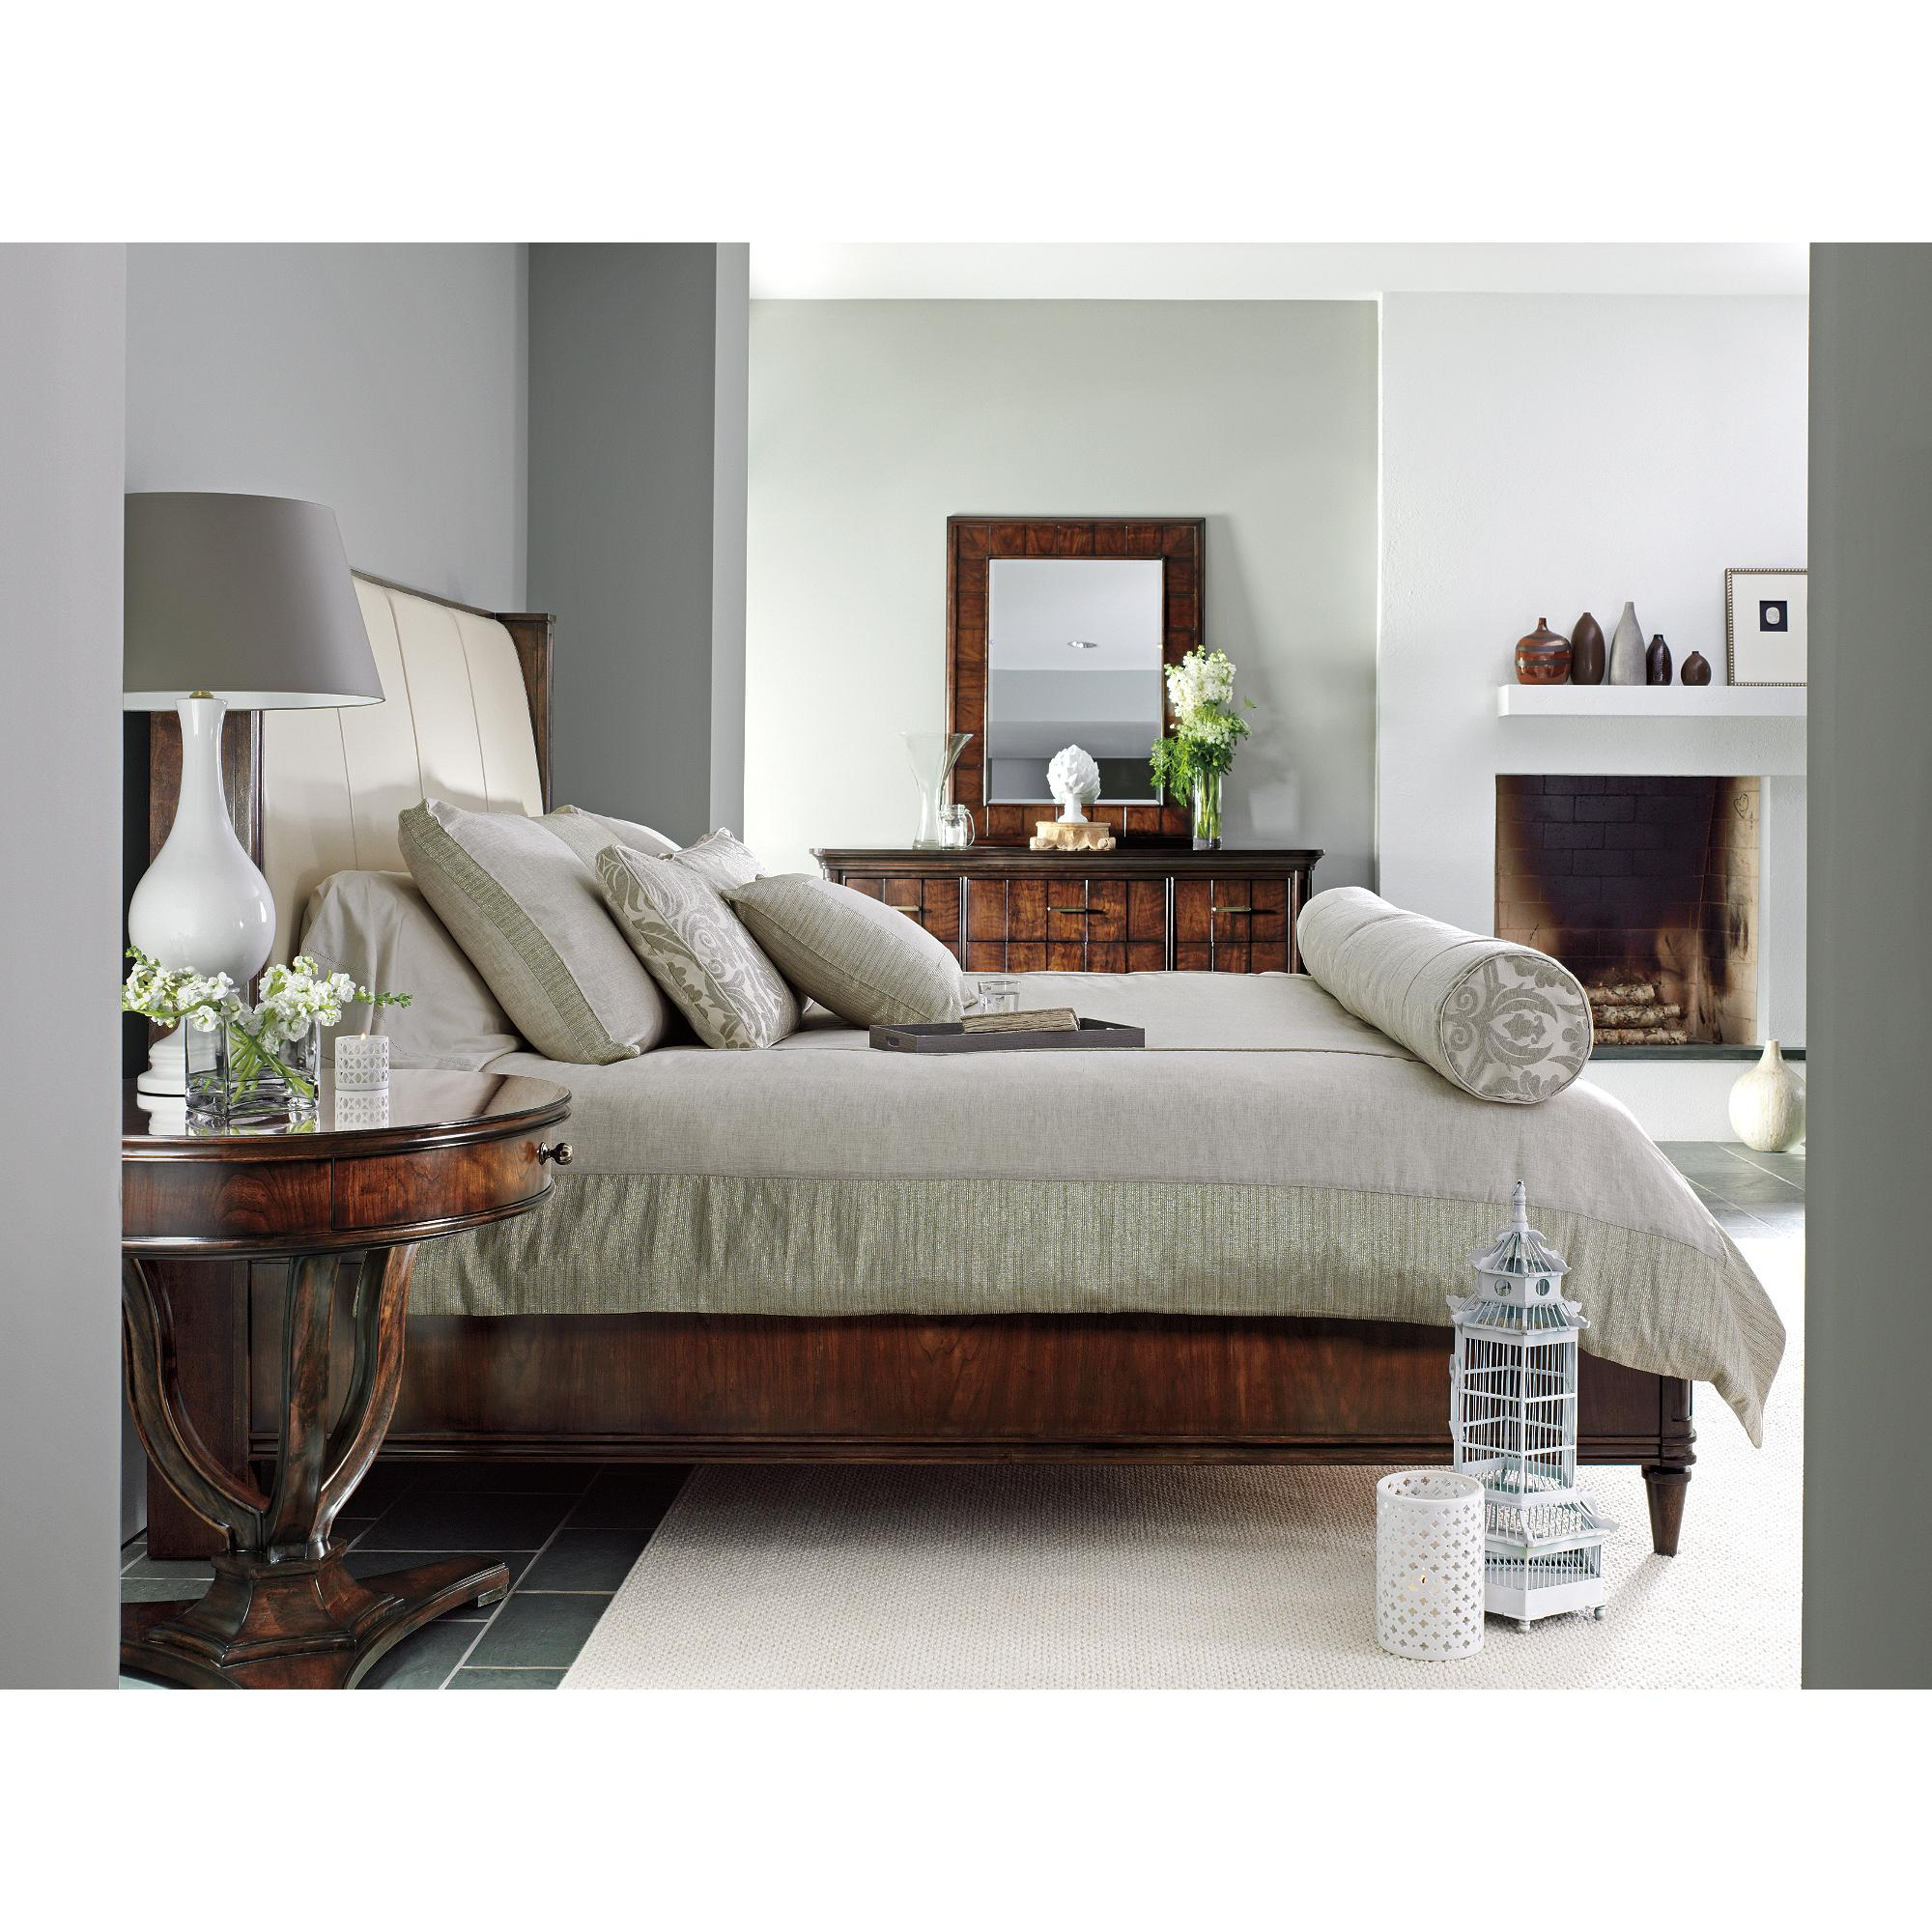 Stanley Furniture Avalon Heights California King Bedroom Group - Item Number: 193 CK Bedroom Group 1